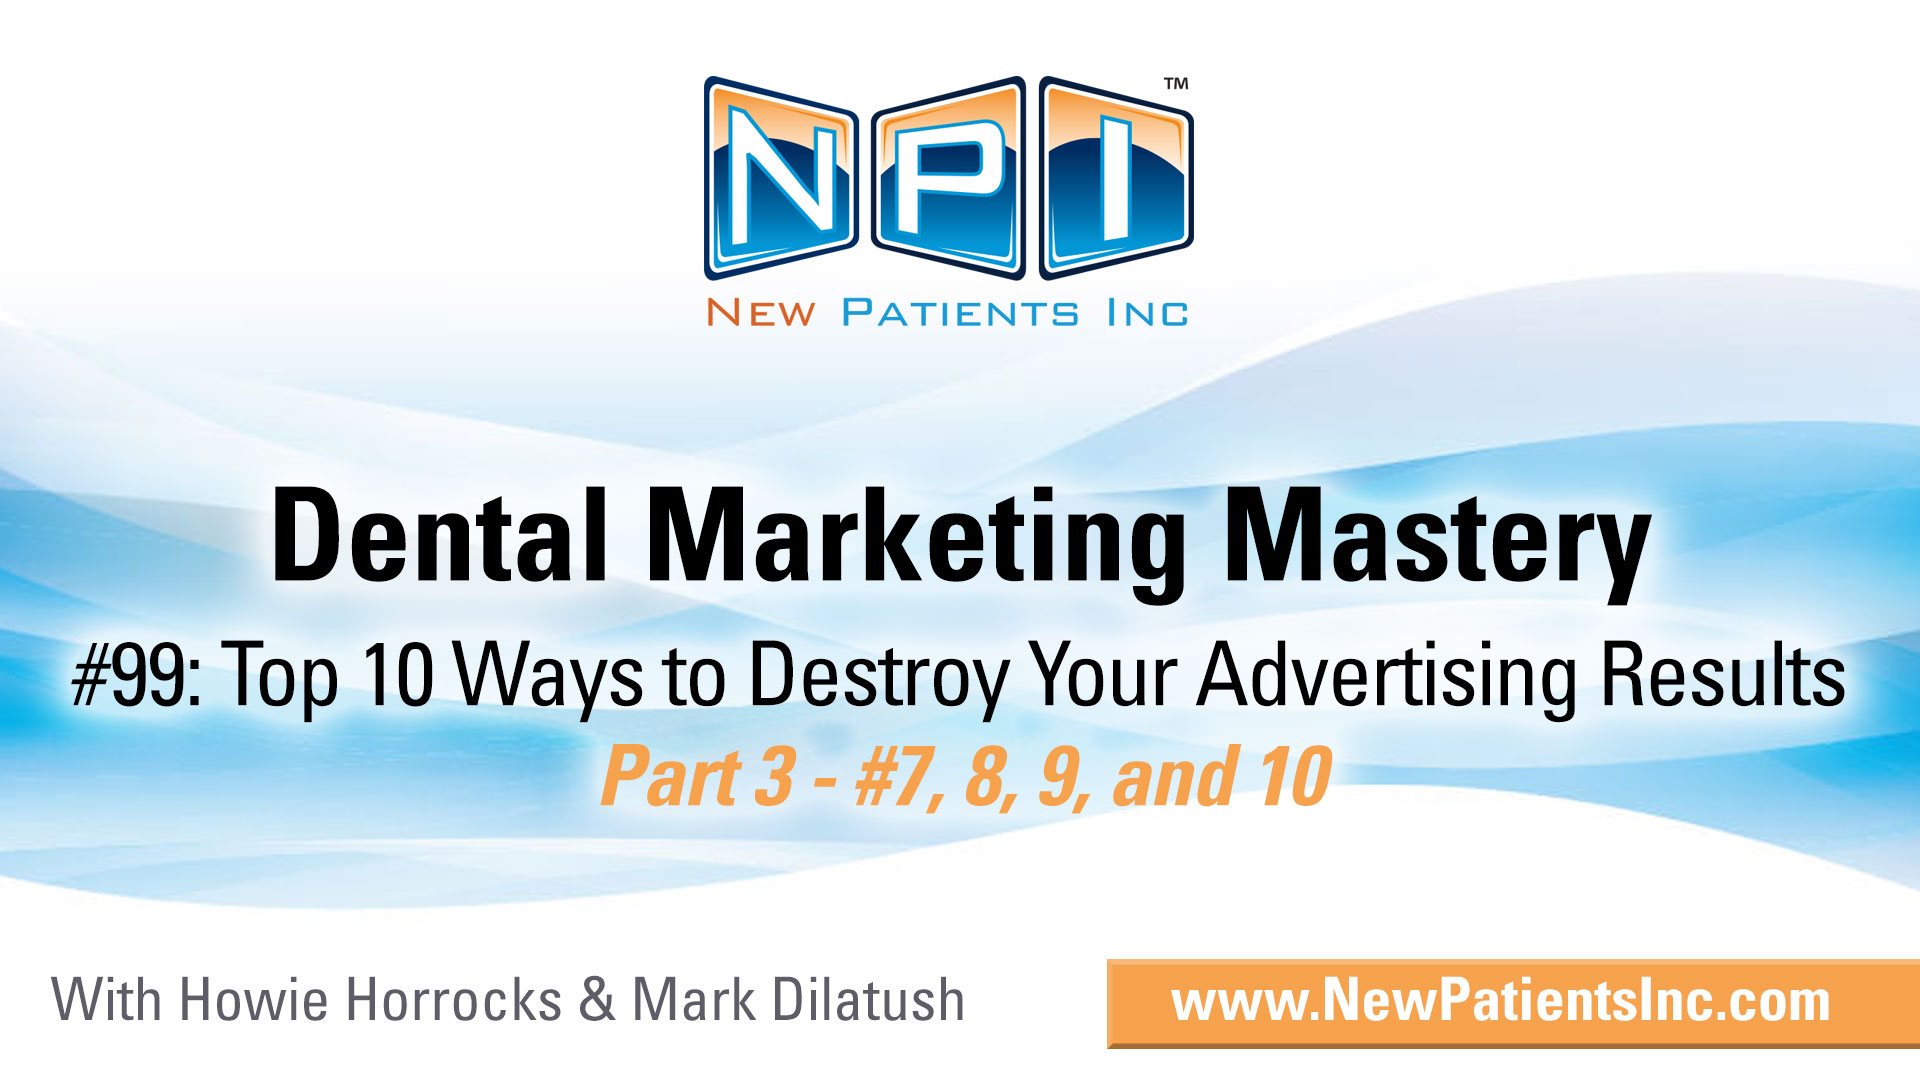 Top 10 Ways To Destroy Your Dental Marketing Strategies